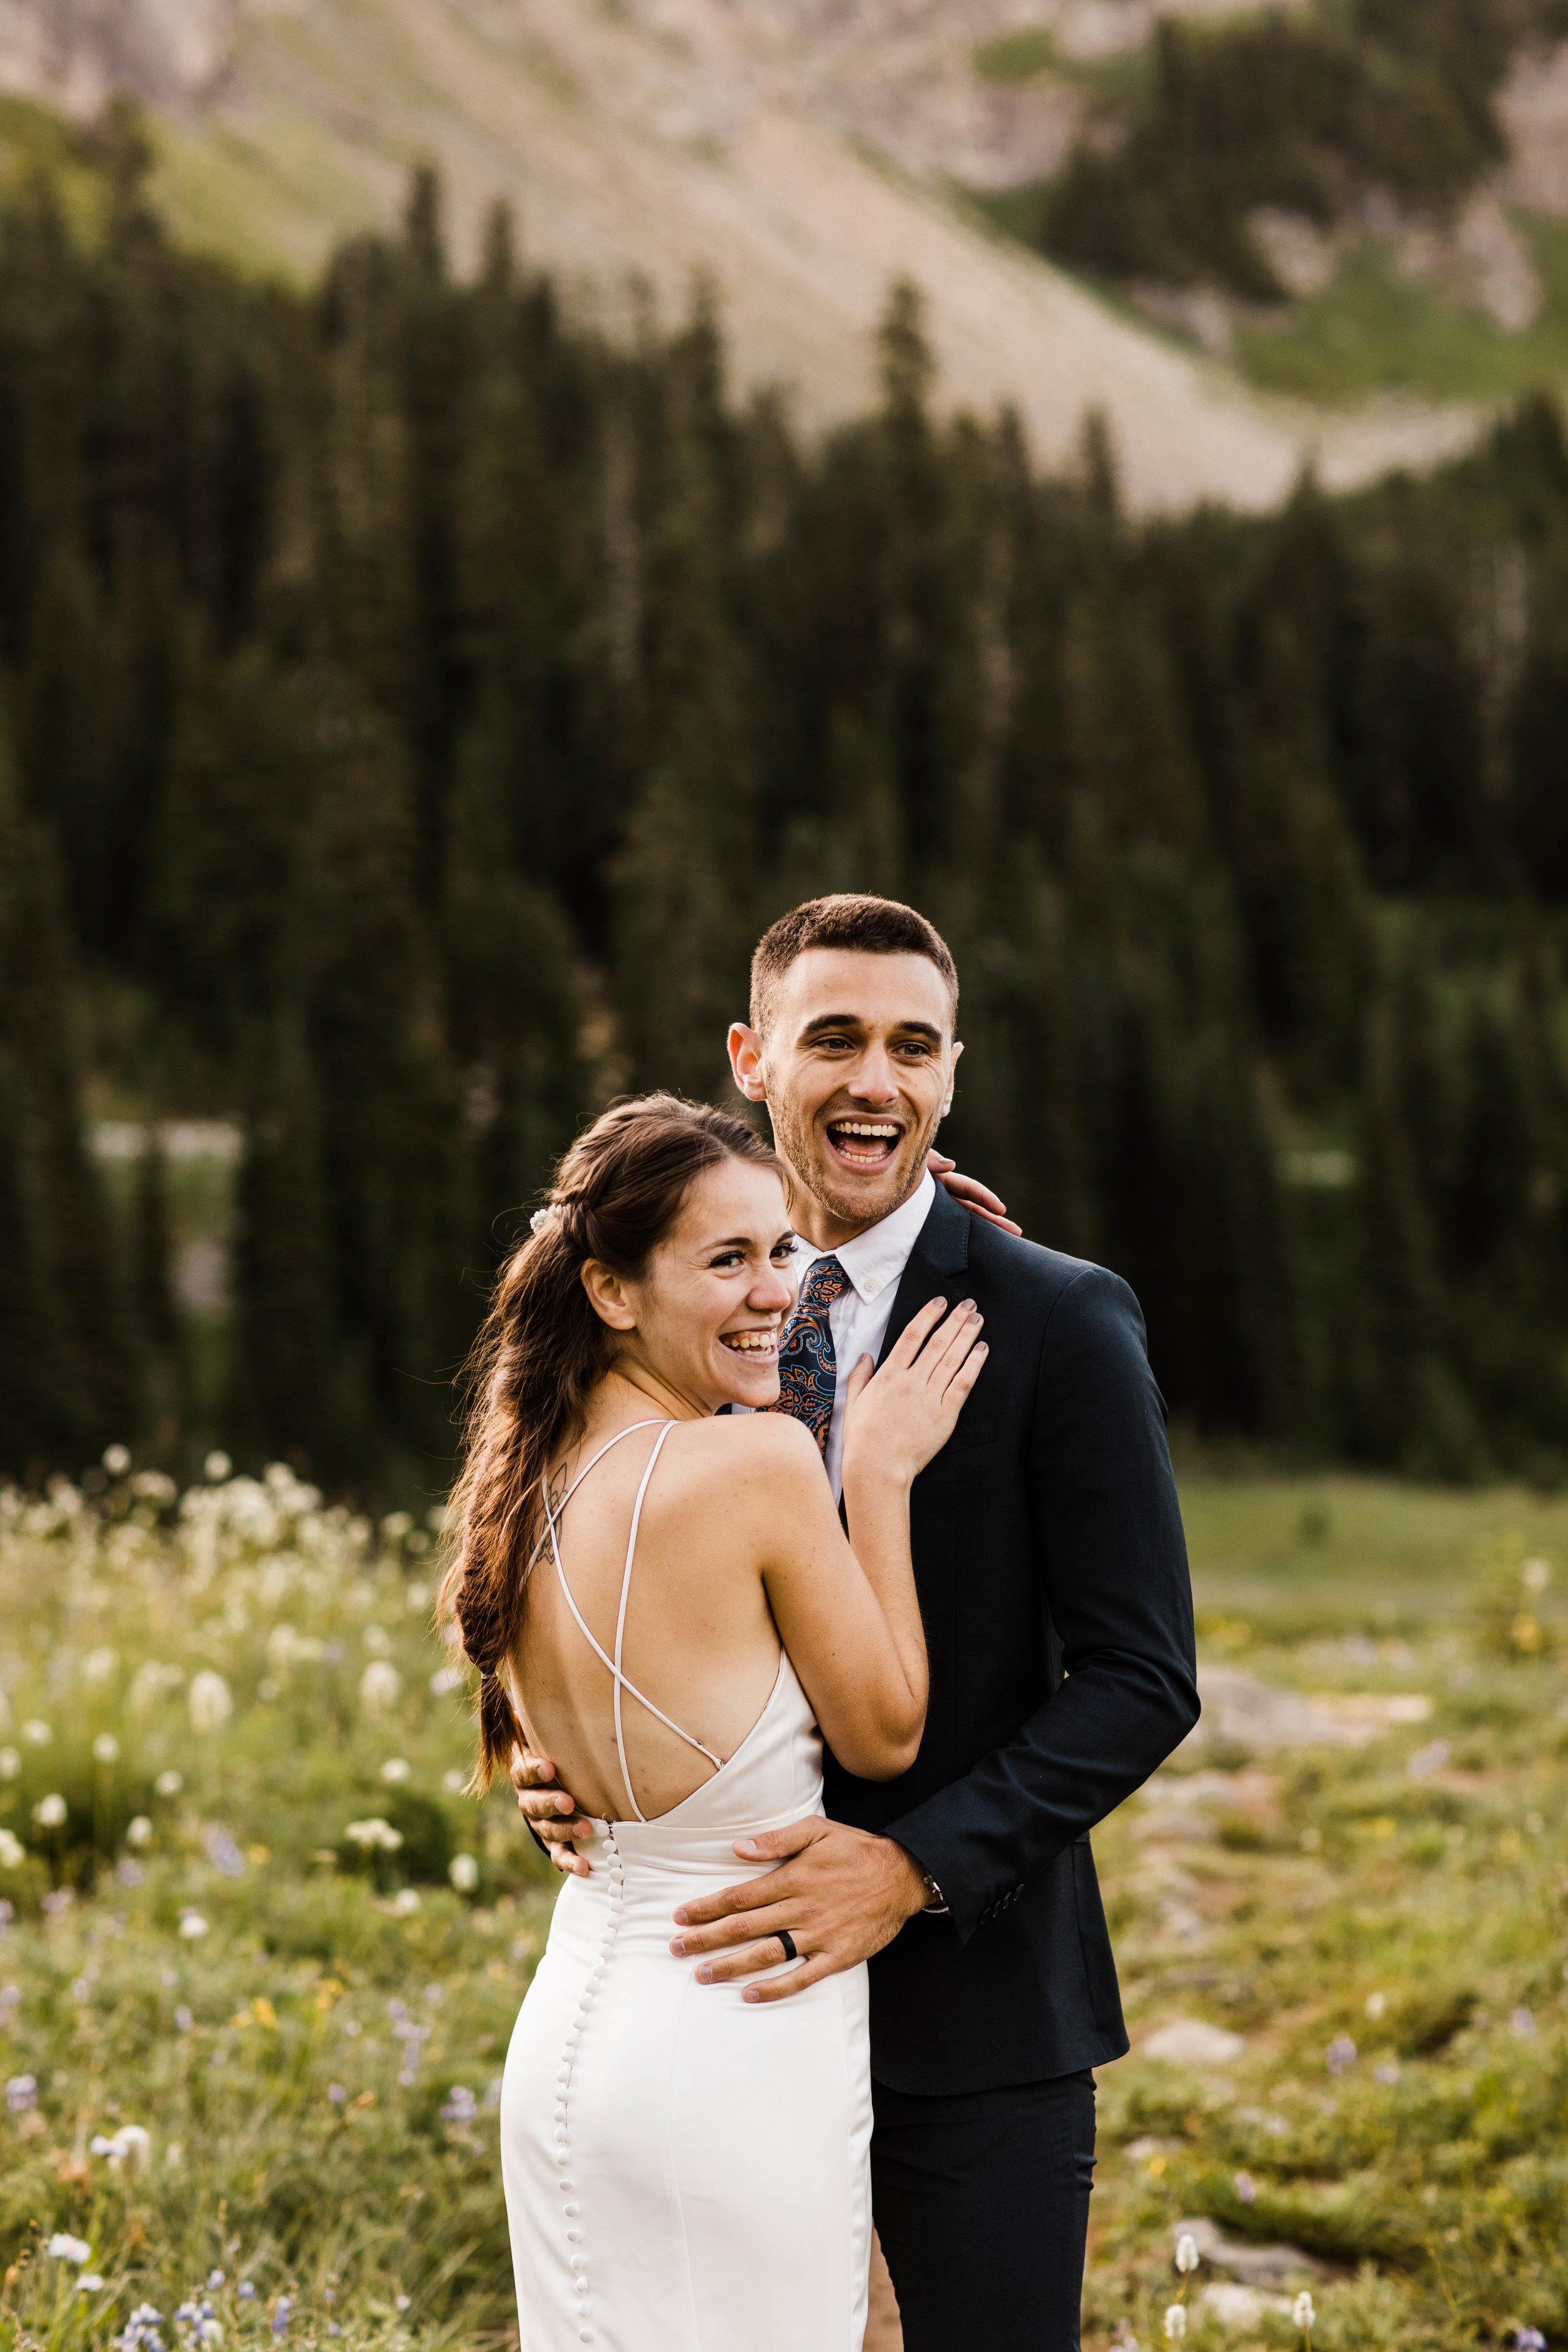 couple giggling during their Mount Rainier National Park elopement in Washington state | Seattle adventure elopement photographers